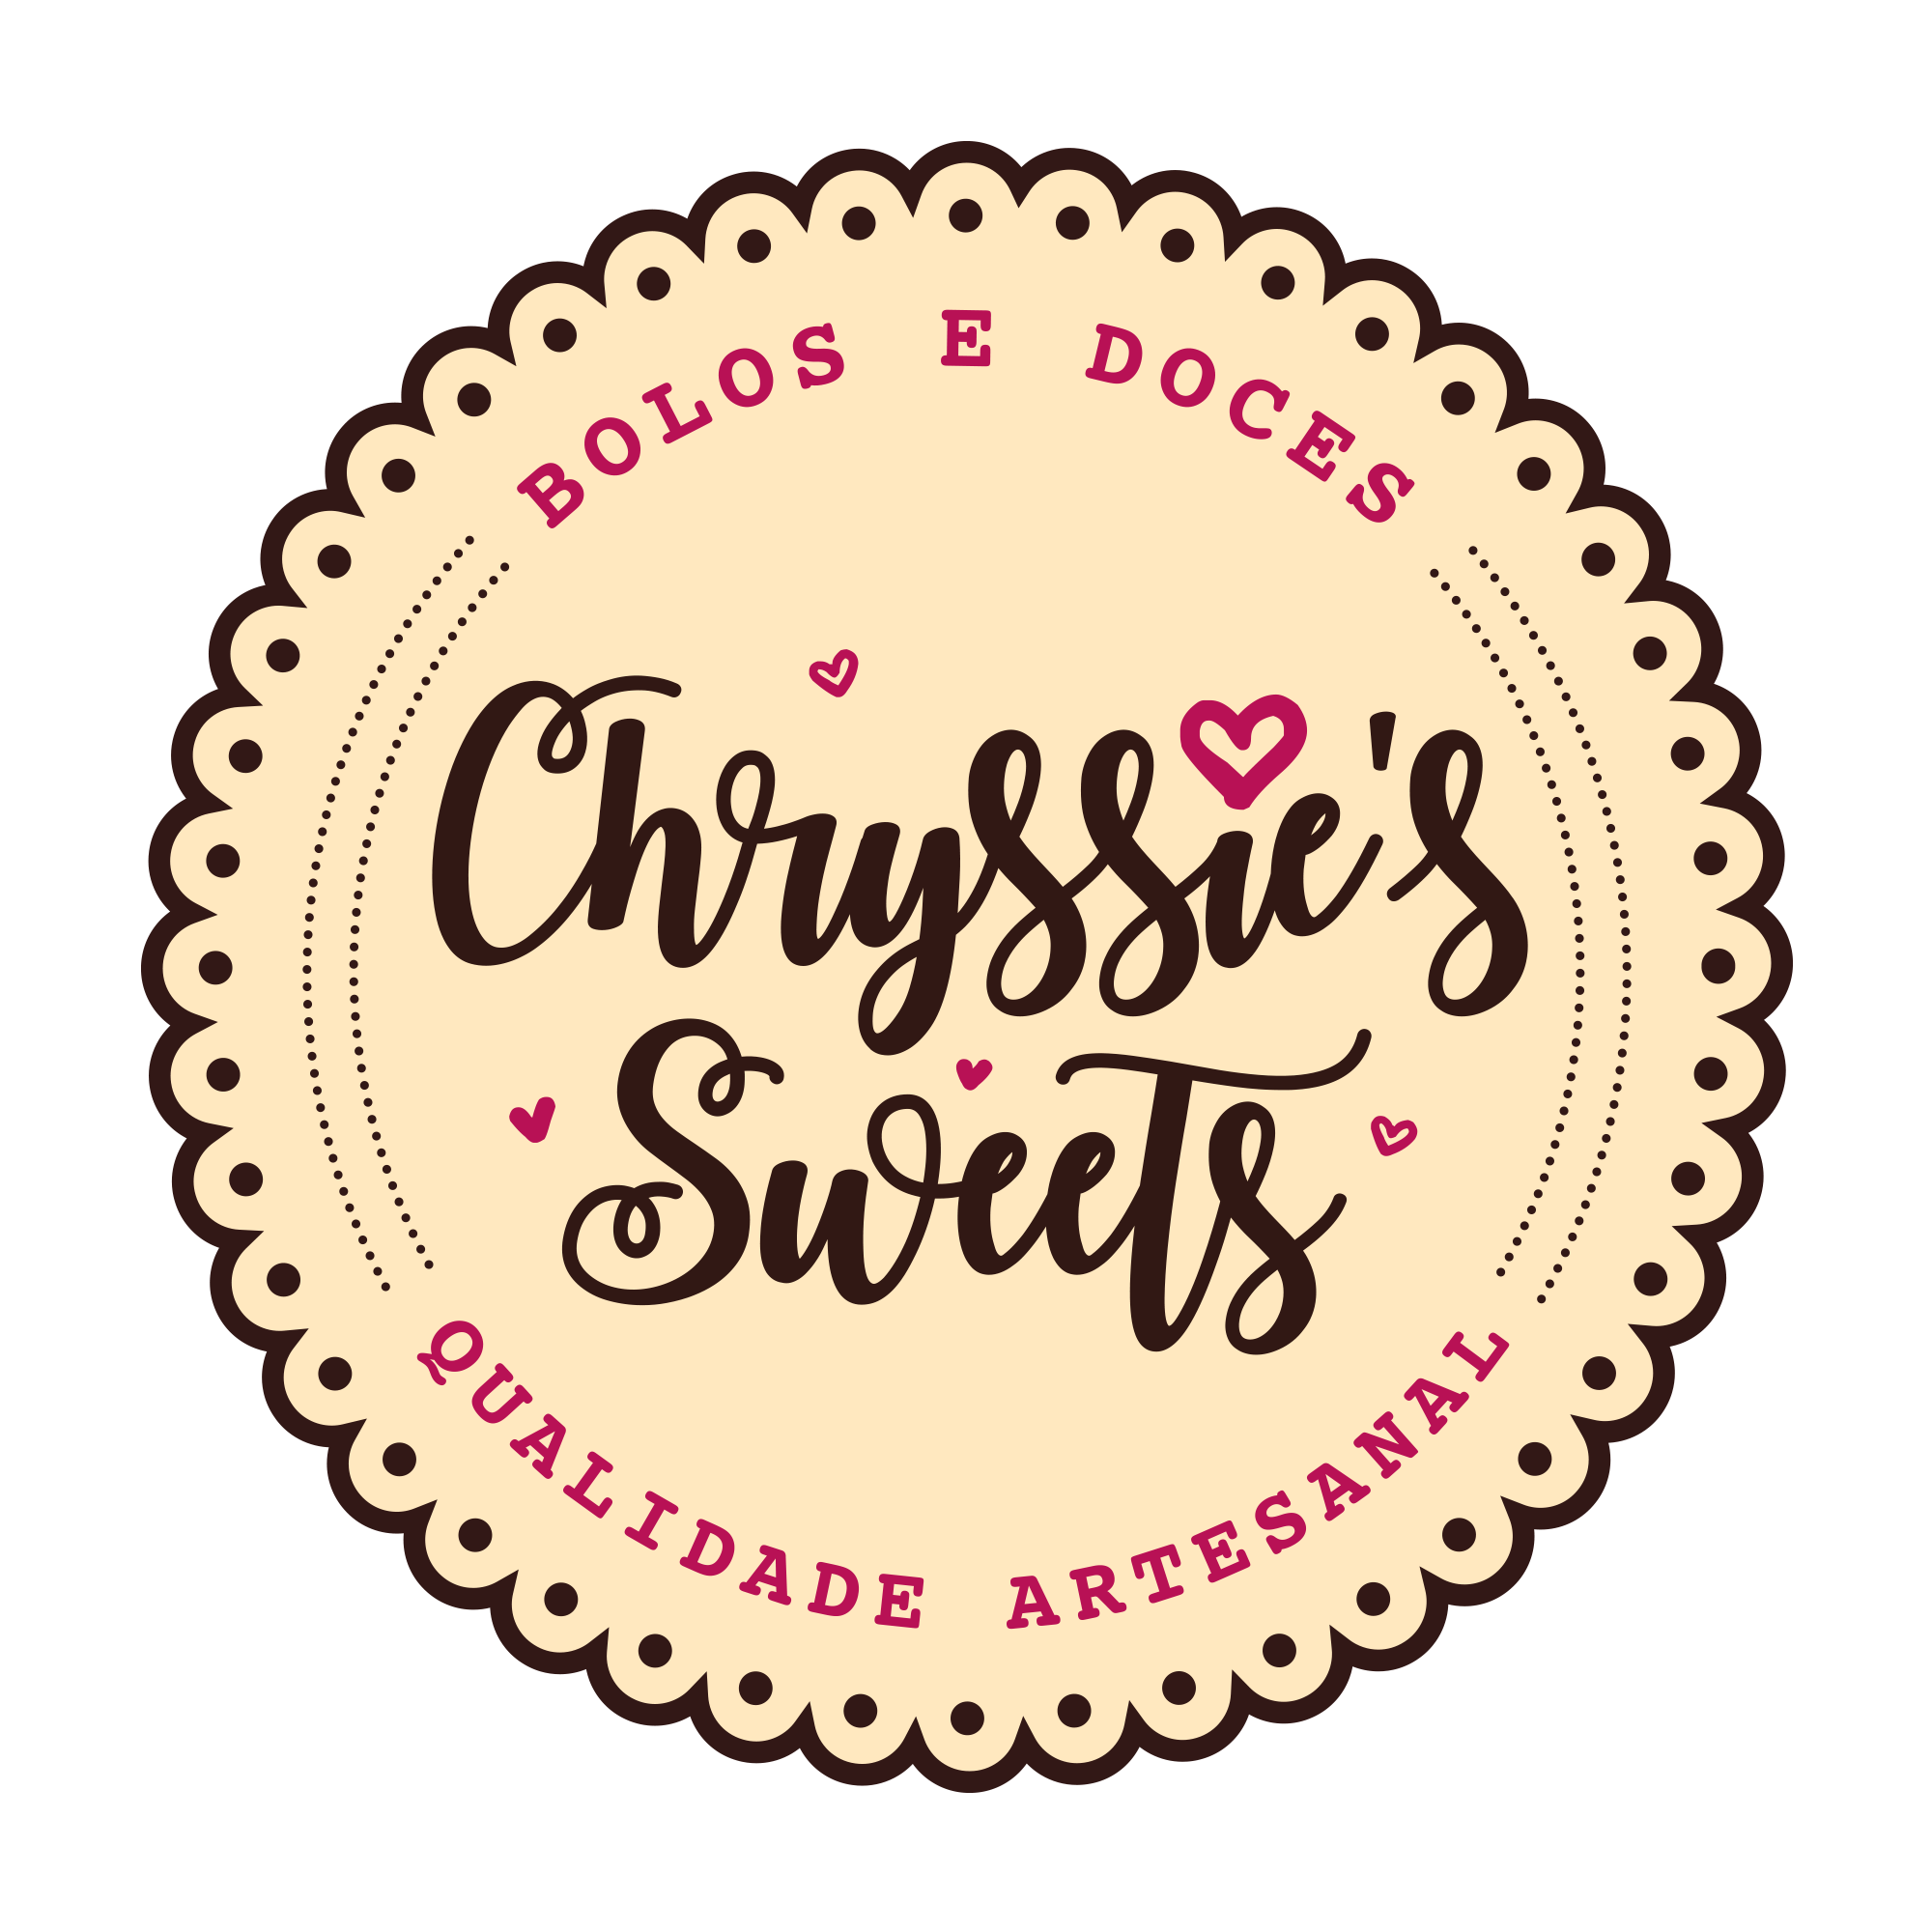 Chryssie's Sweets | Festival Gastronômico UPV 2019